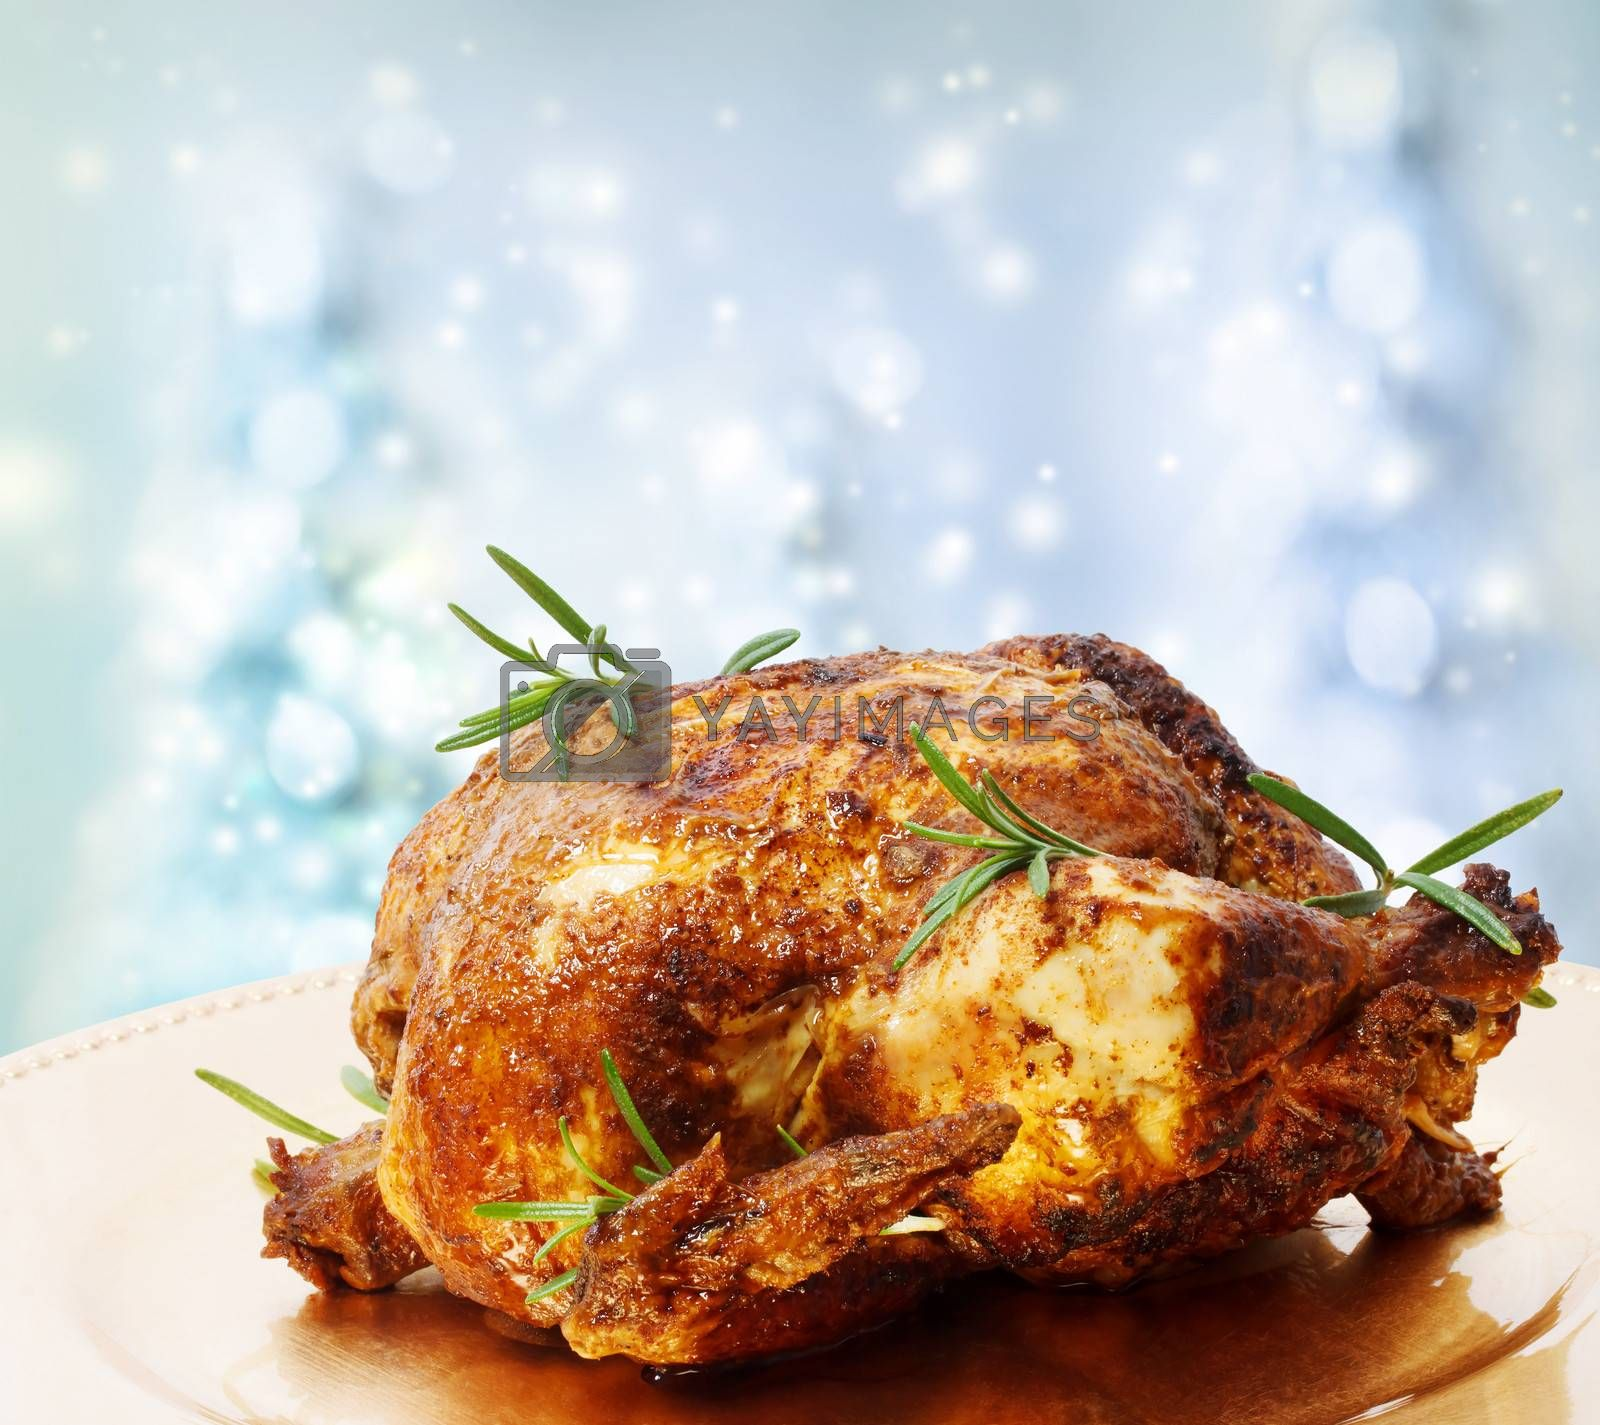 Royalty free image of Roasted Whole Chicken with Rosemary by melpomene